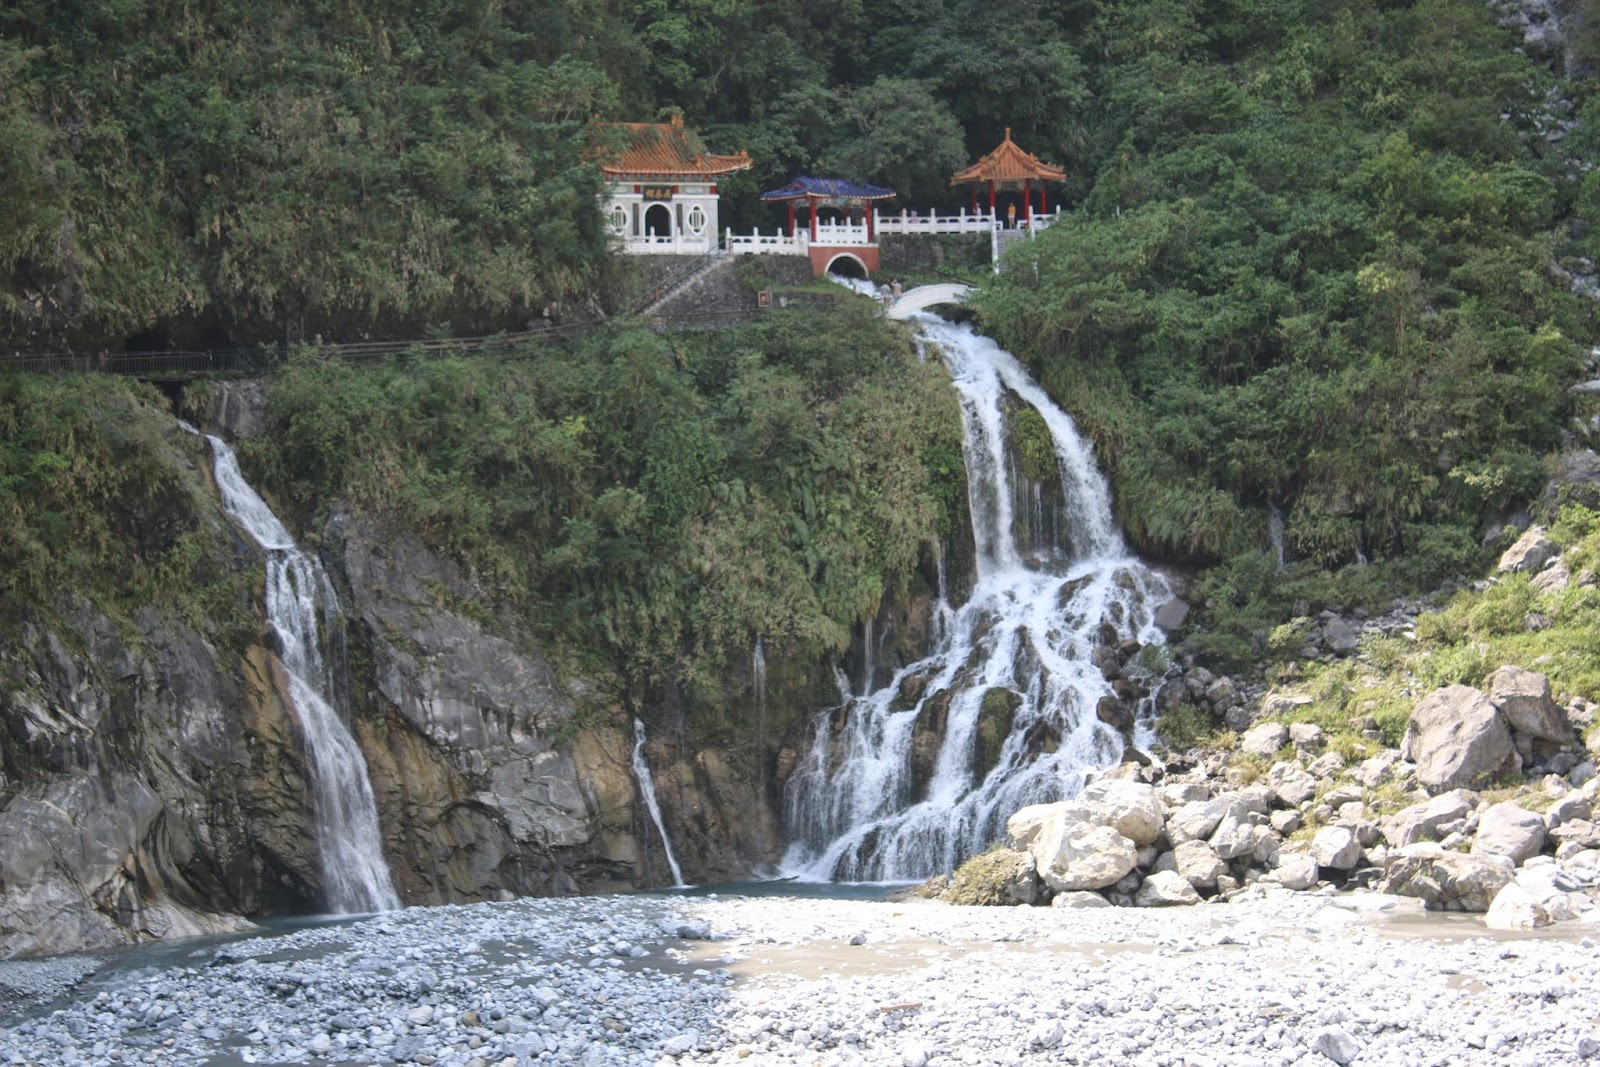 A popular shoot position of the Eternal Spring Shrine at Taroko Gorge National Park in Hualien, Taiwan